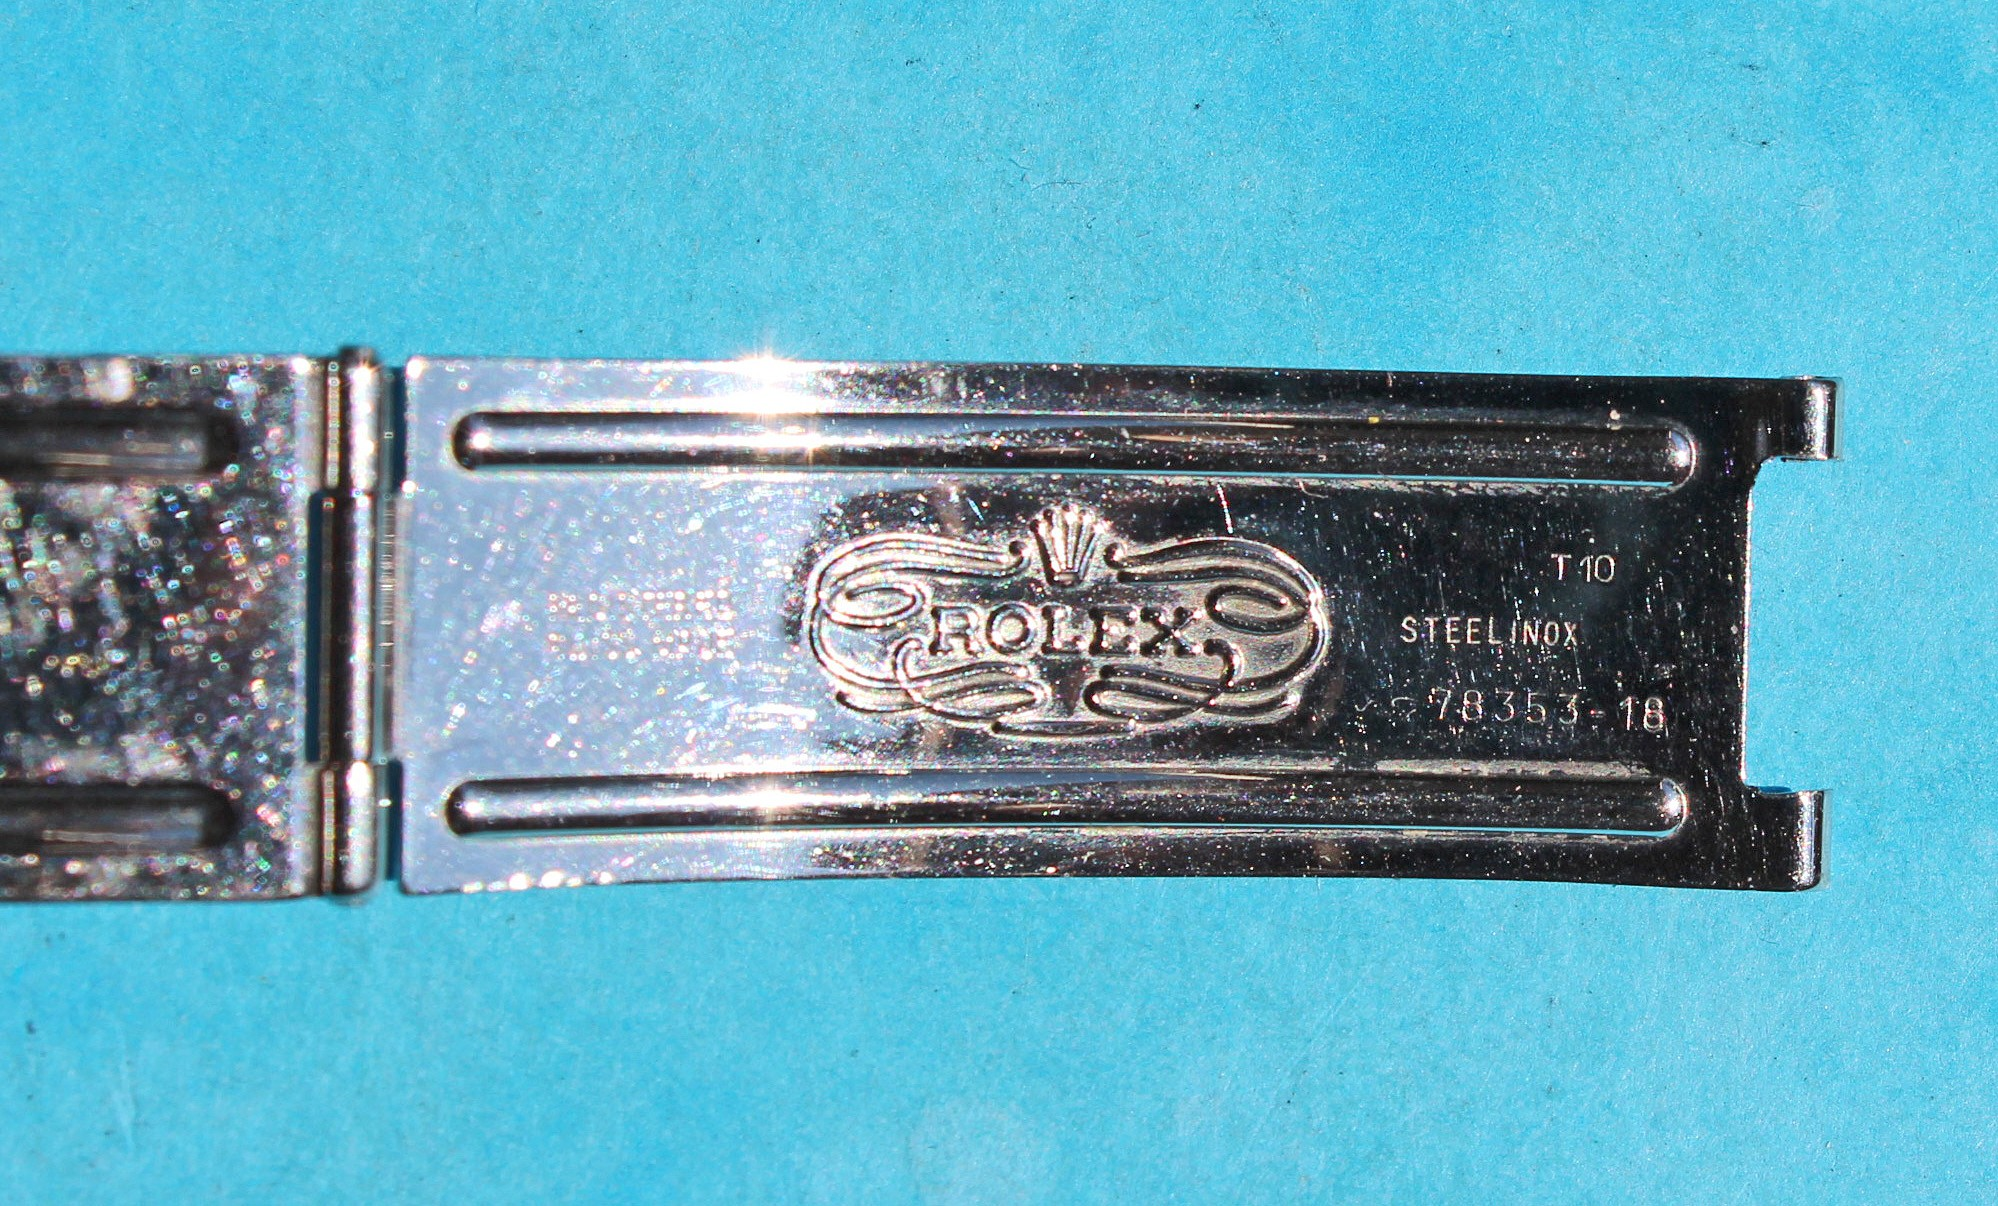 Vintage 1995 ROLEX Clasp deployant buckle Oyster Steel Watch Band Ref 78353-18 for bracelets tutone gold a ssteel 19mm code T10